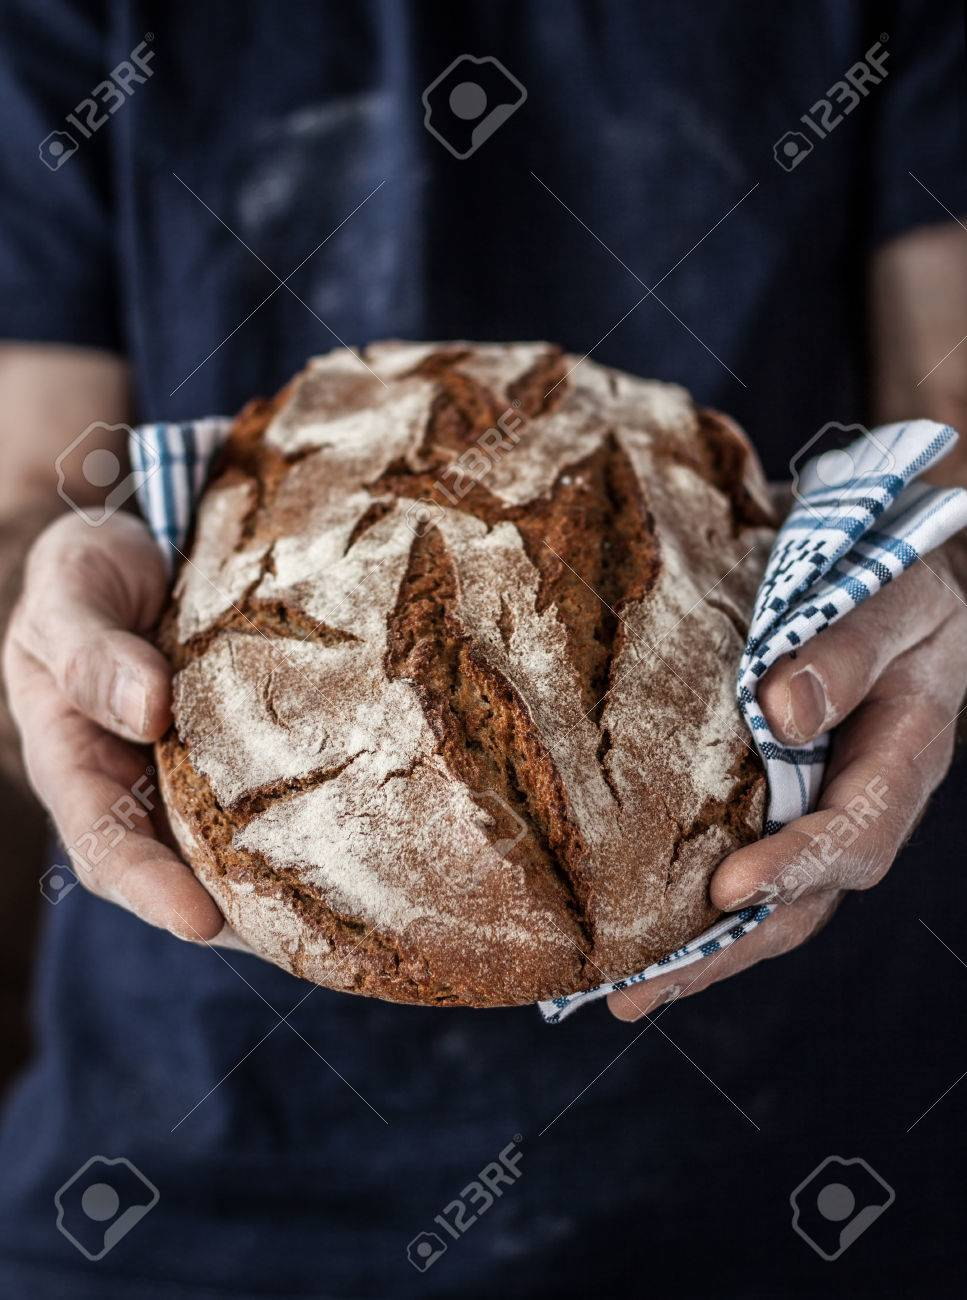 Baker man holding rustic organic loaf of bread in hands - rural bakery. Natural light, moody background with free text space good for poster or cover. - 55317387